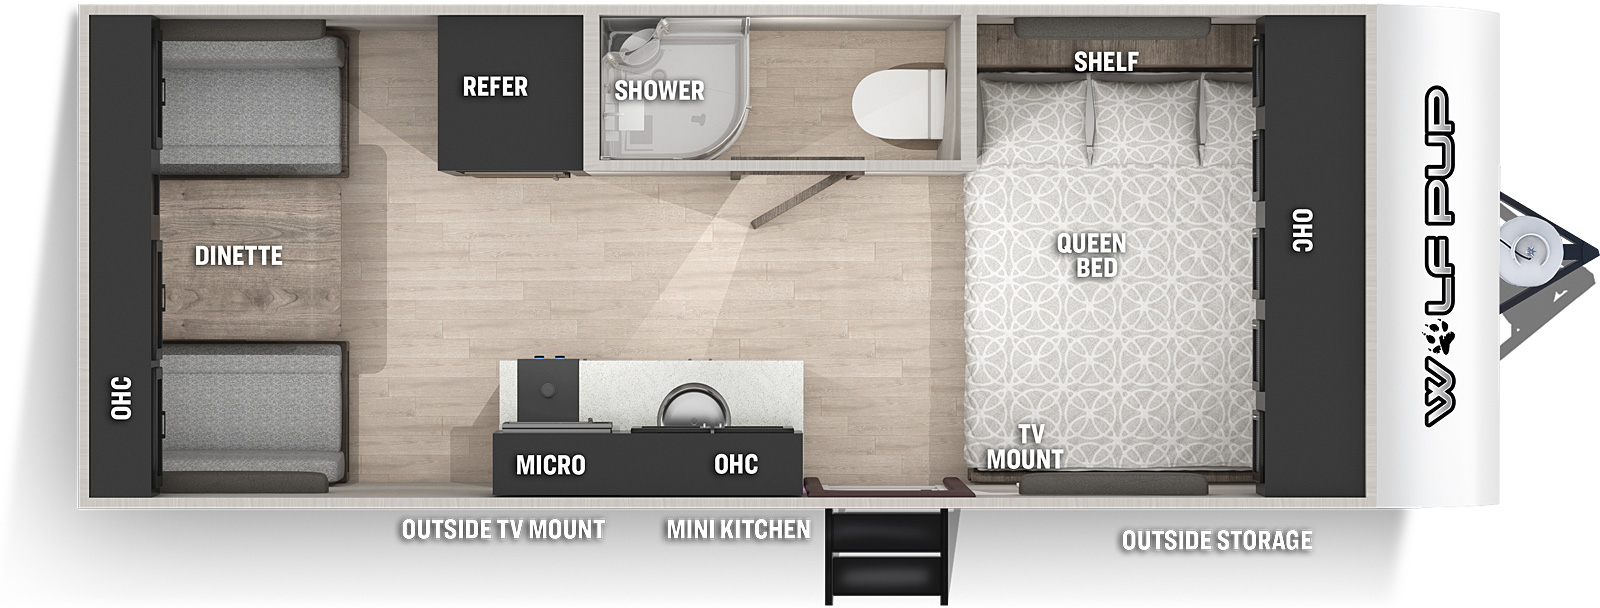 forest river cherokee wolf pup travel trailer floor plan